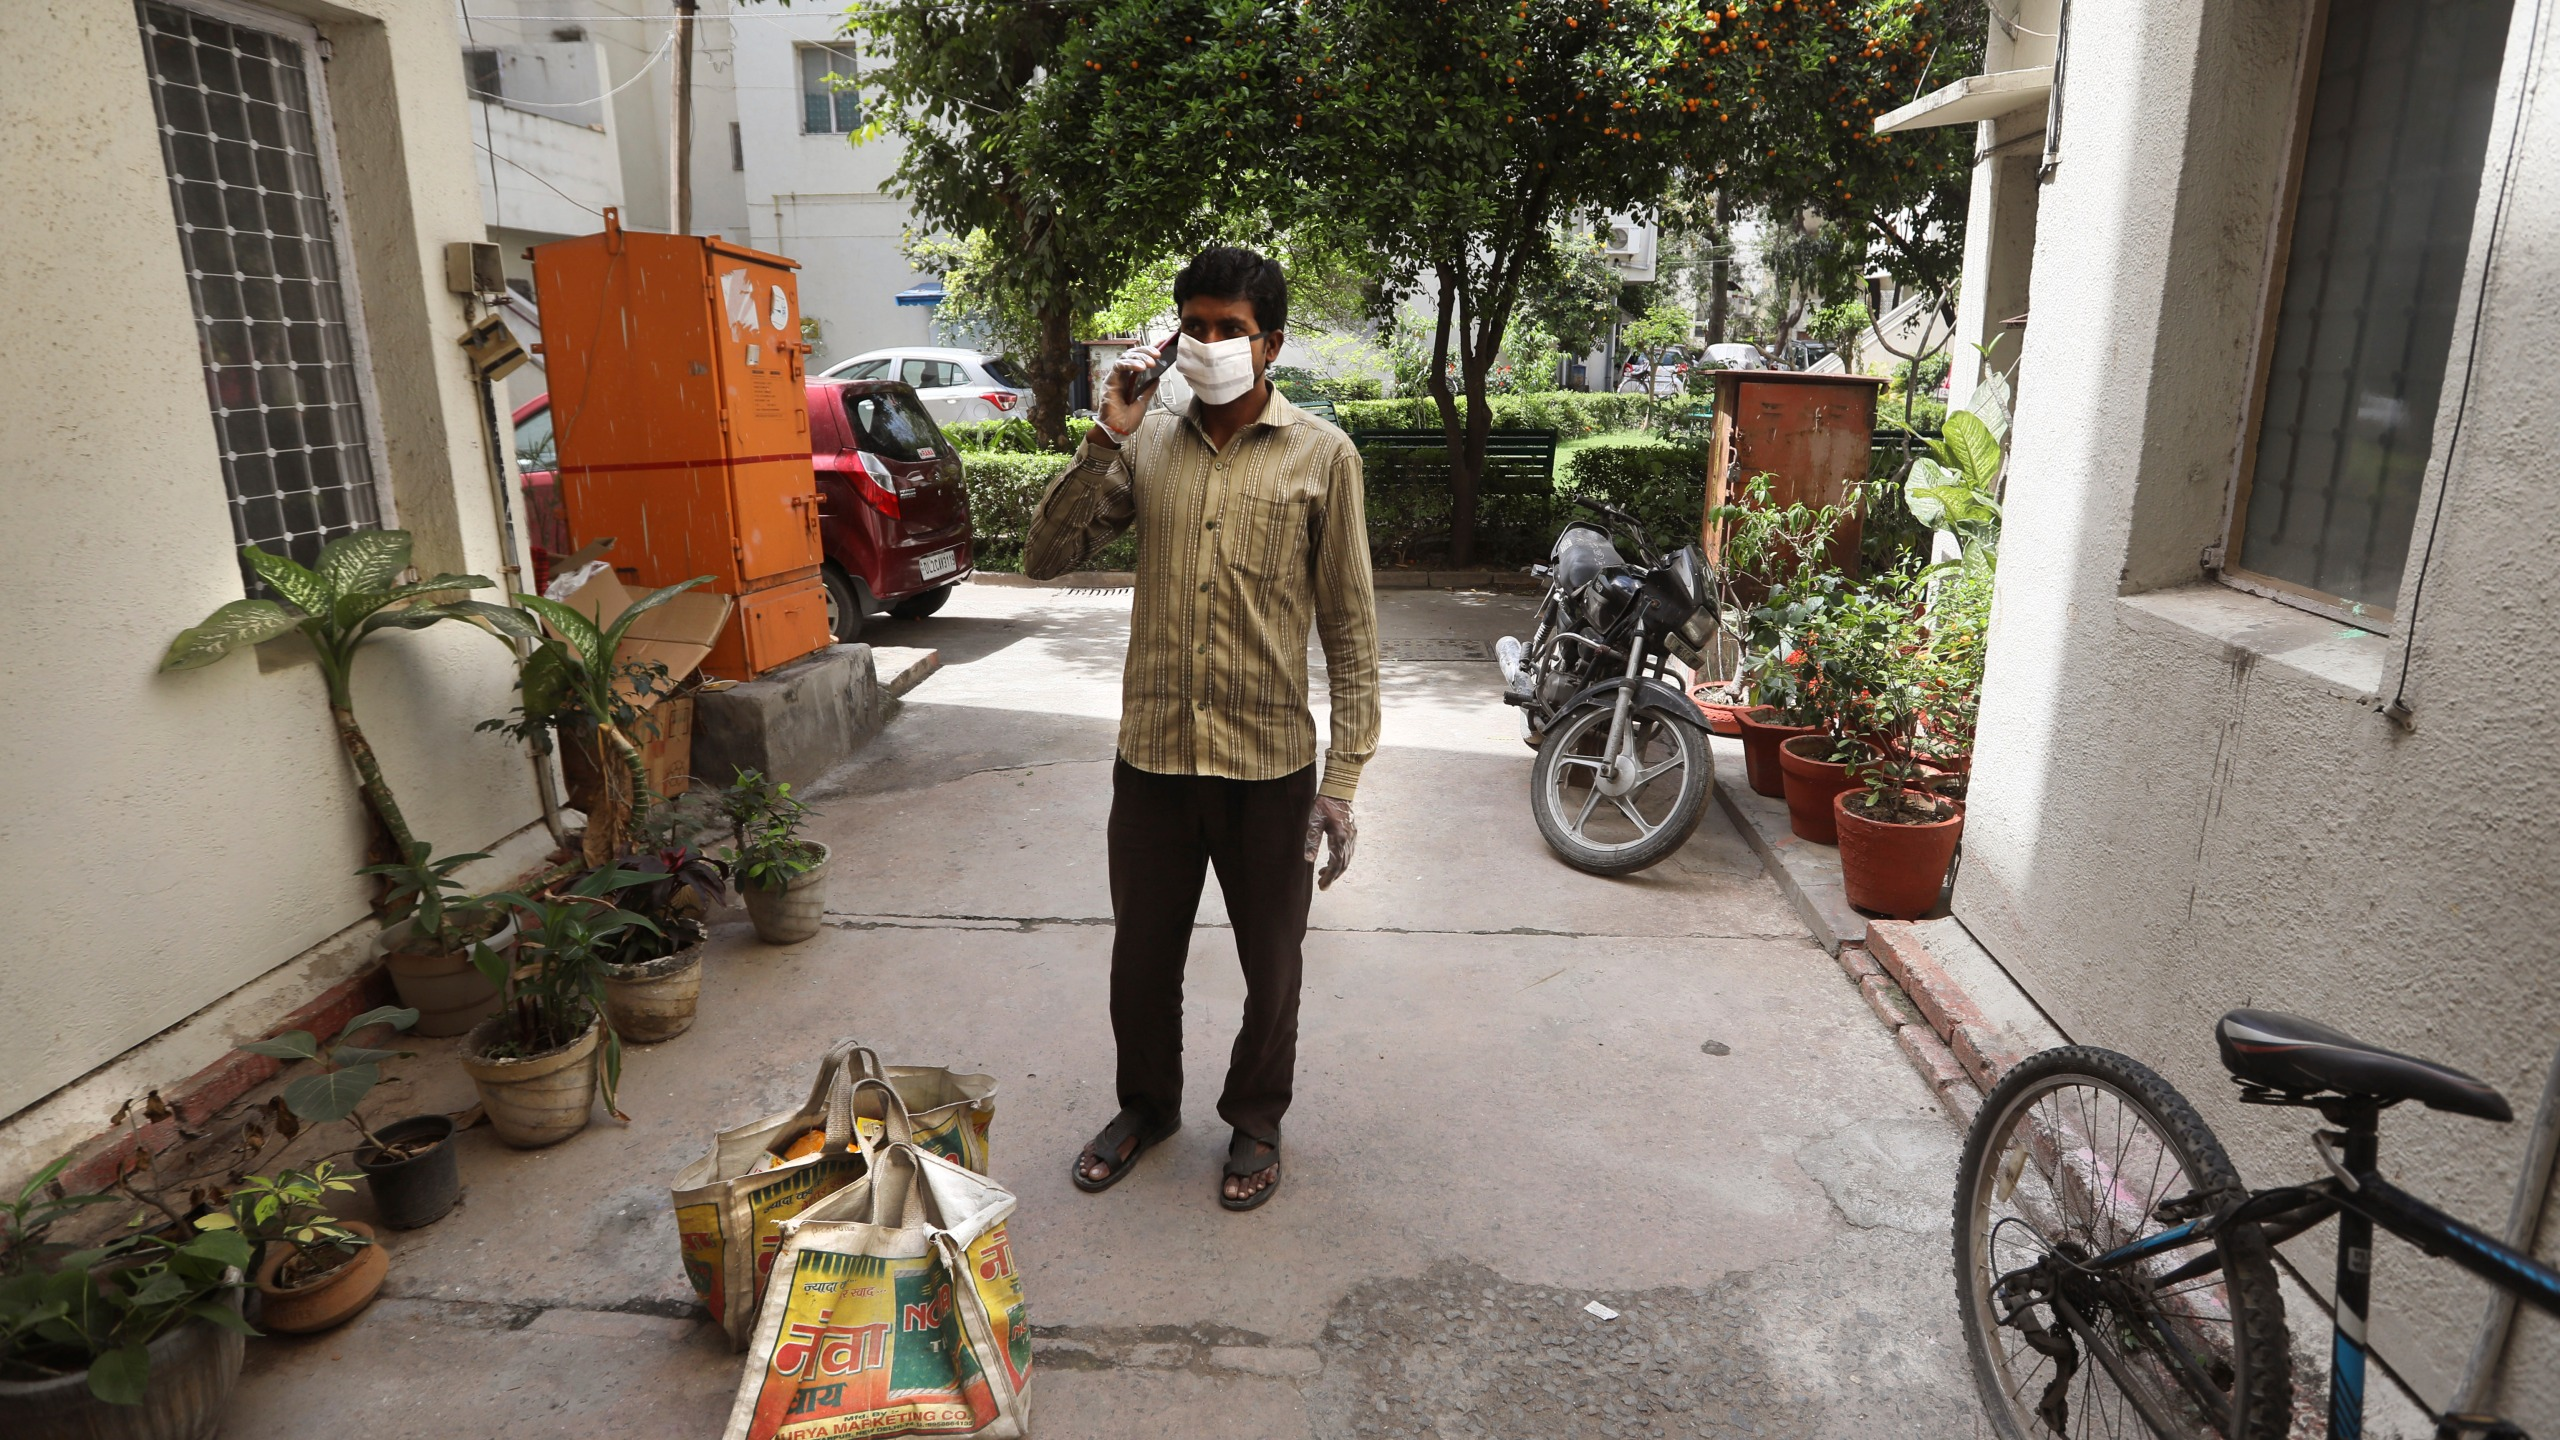 A grocery shop employee, wearing face mask as a precaution against coronavirus, calls a customer living on the second floor to come down to receive their delivery in New Delhi, India, Wednesday, March 25, 2020. The world's largest democracy went under the world's biggest lockdown Wednesday, with India's 1.3 billion people ordered to stay home in a bid to stop the coronavirus pandemic from spreading and overwhelming its fragile health care system as it has done elsewhere. (AP Photo/Manish Swarup)